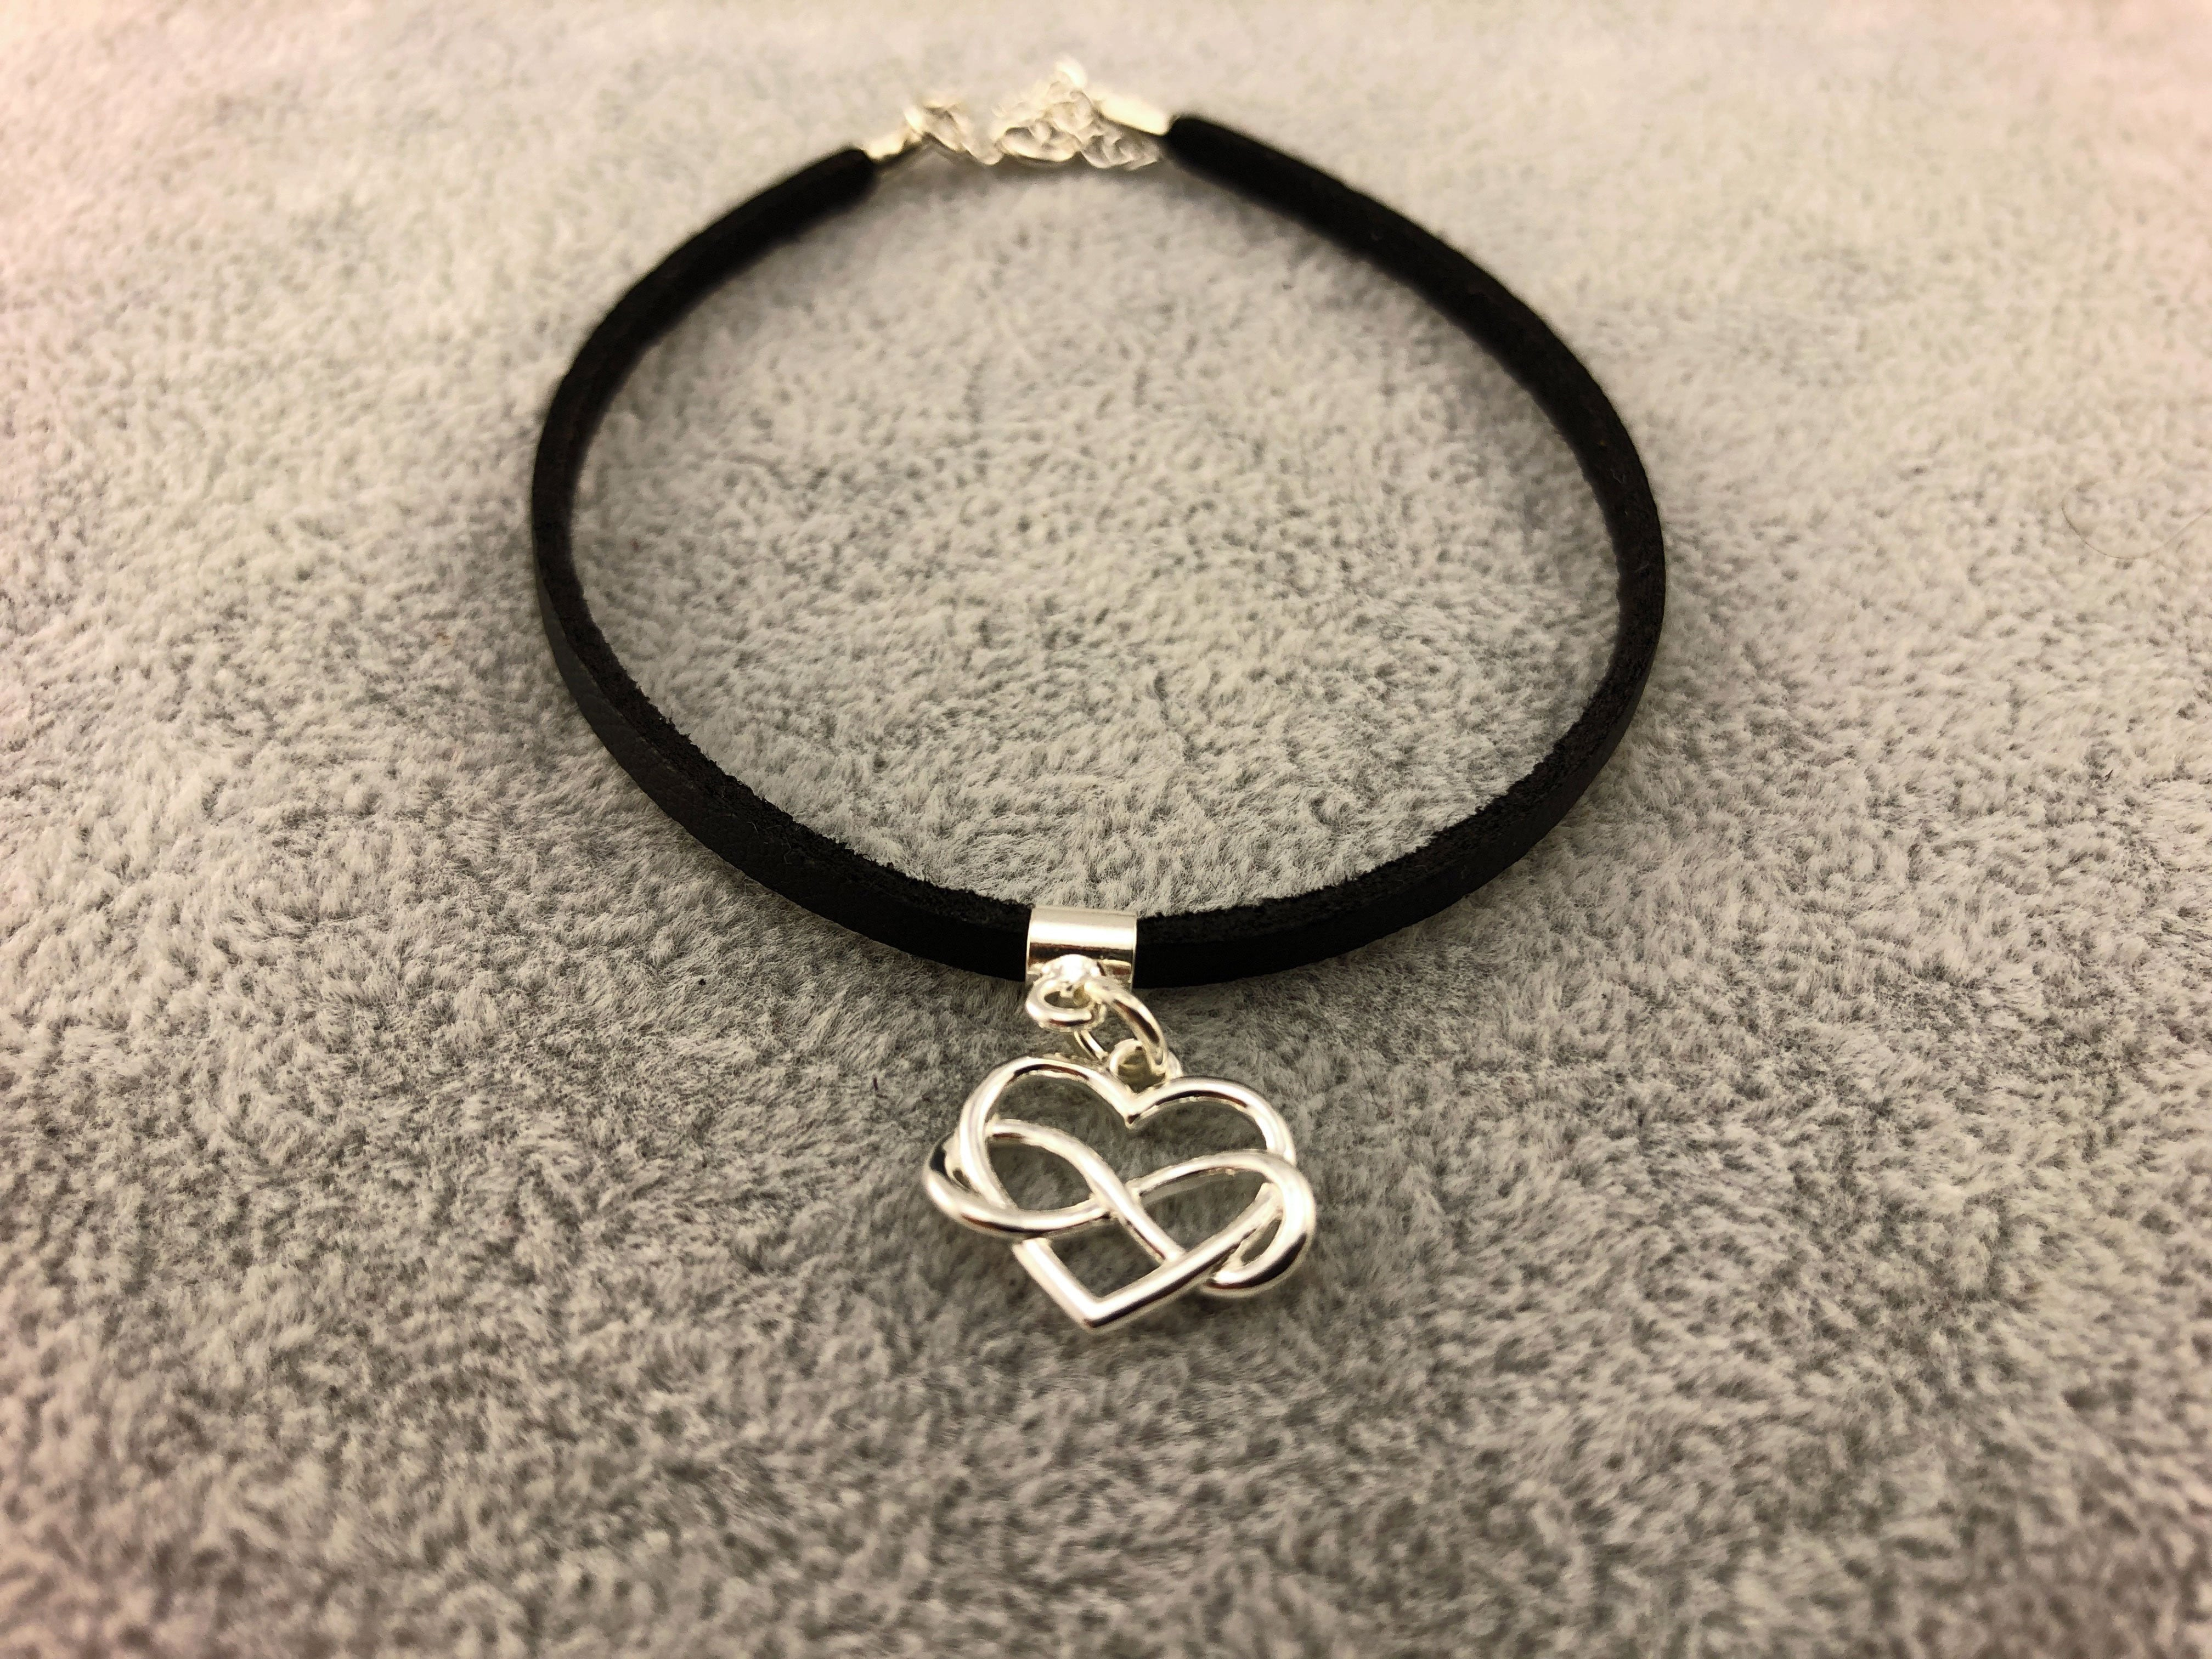 Leather Bracelet - I love you forever - By Janine Jewellery